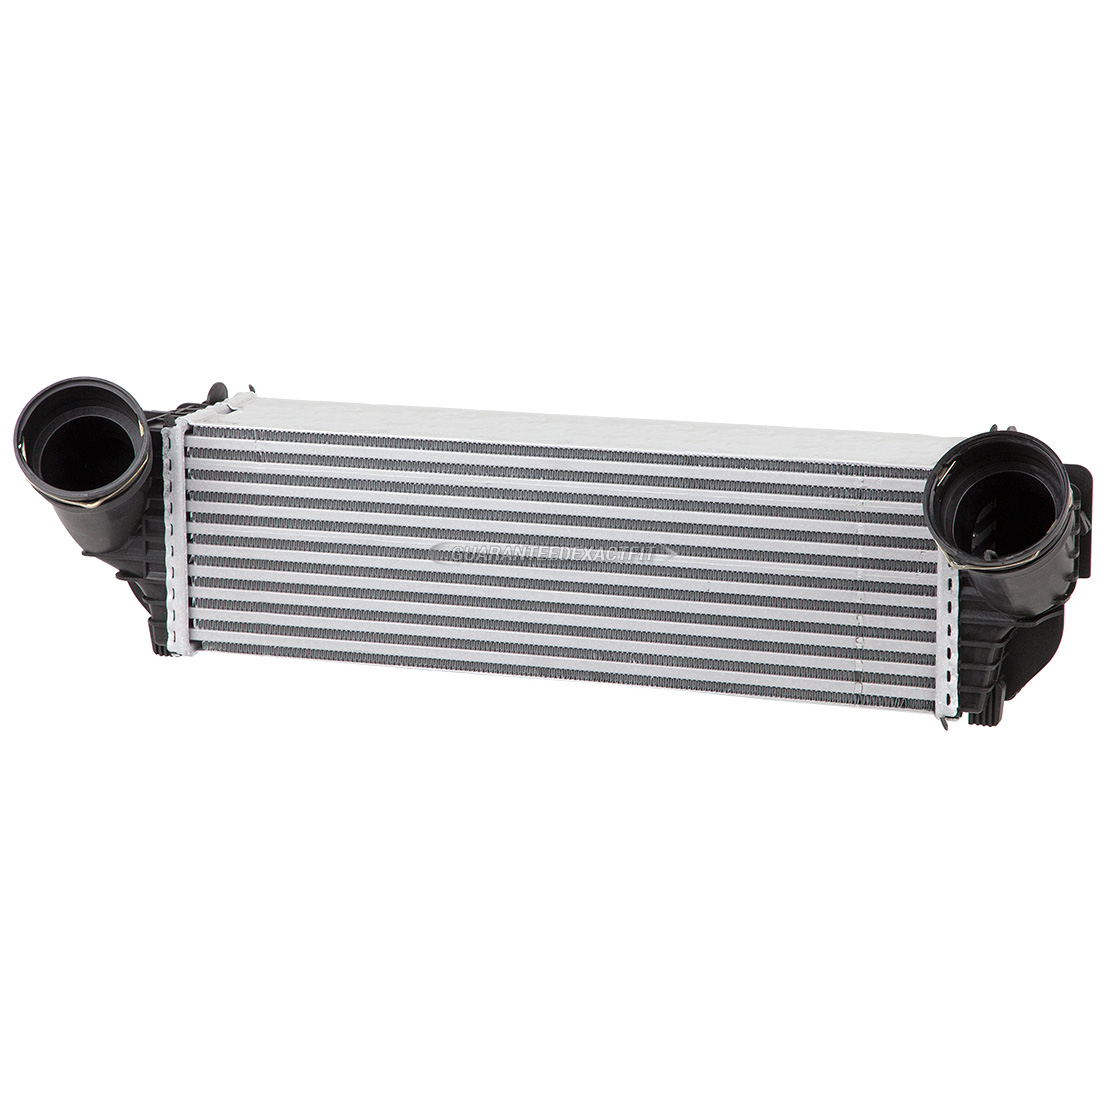 BMW 740 Intercooler